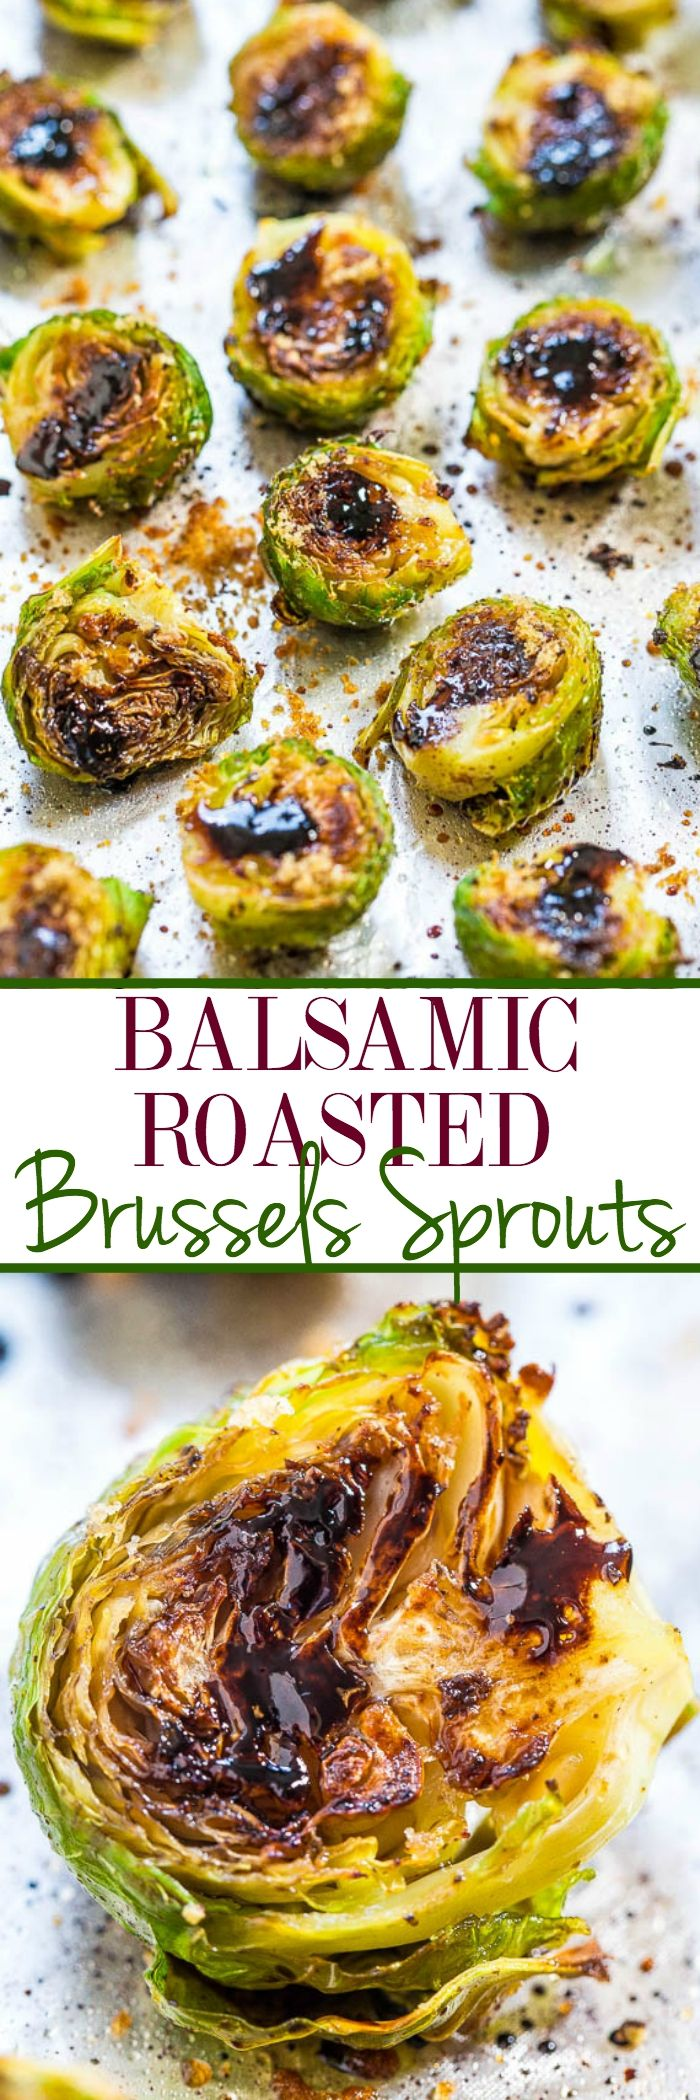 Balsamic Glaze Roasted Brussels Sprouts